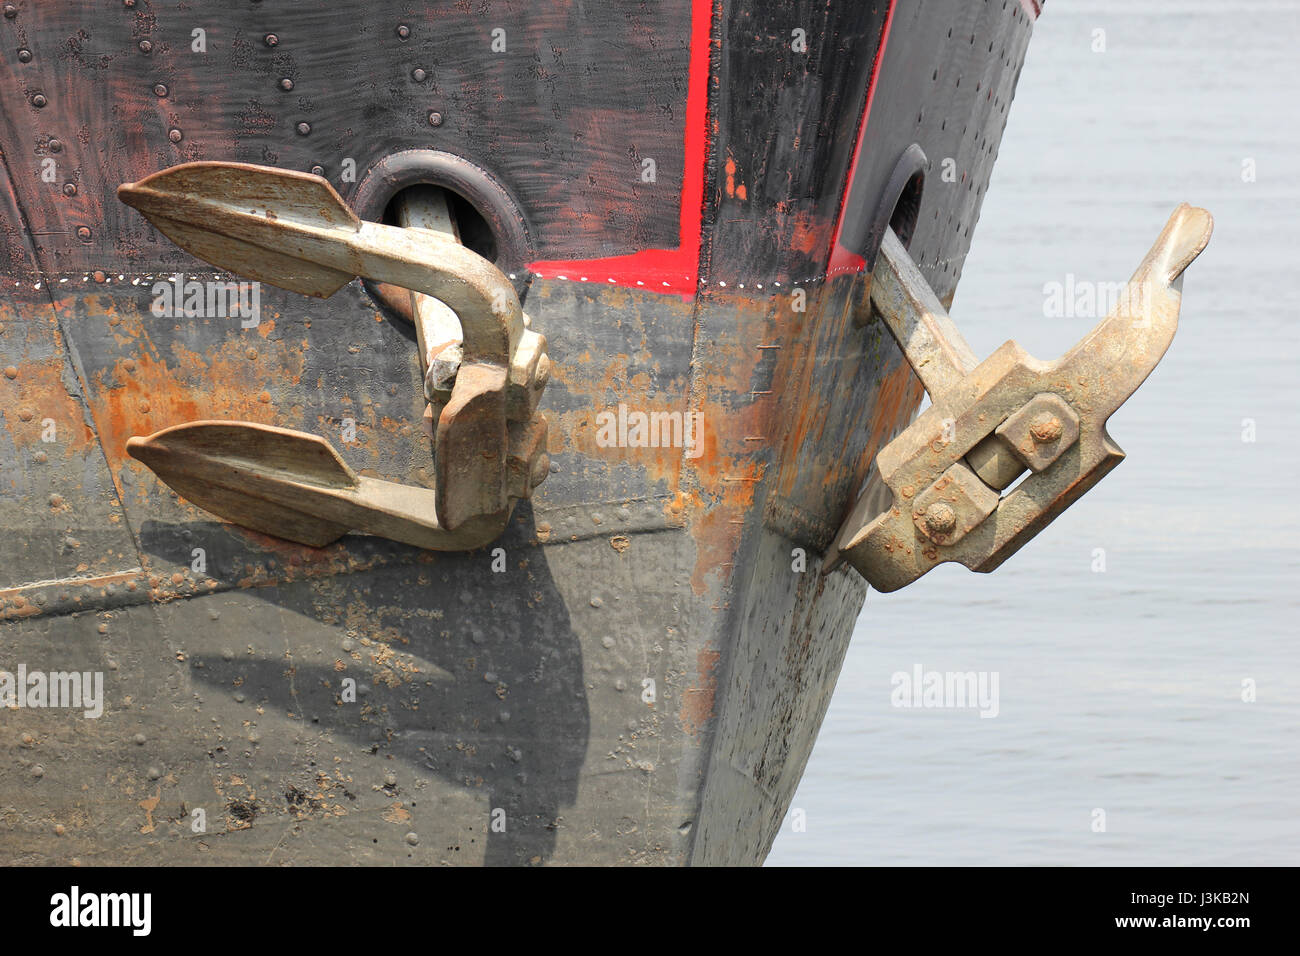 anchors of an inland cargo vessel - Stock Image